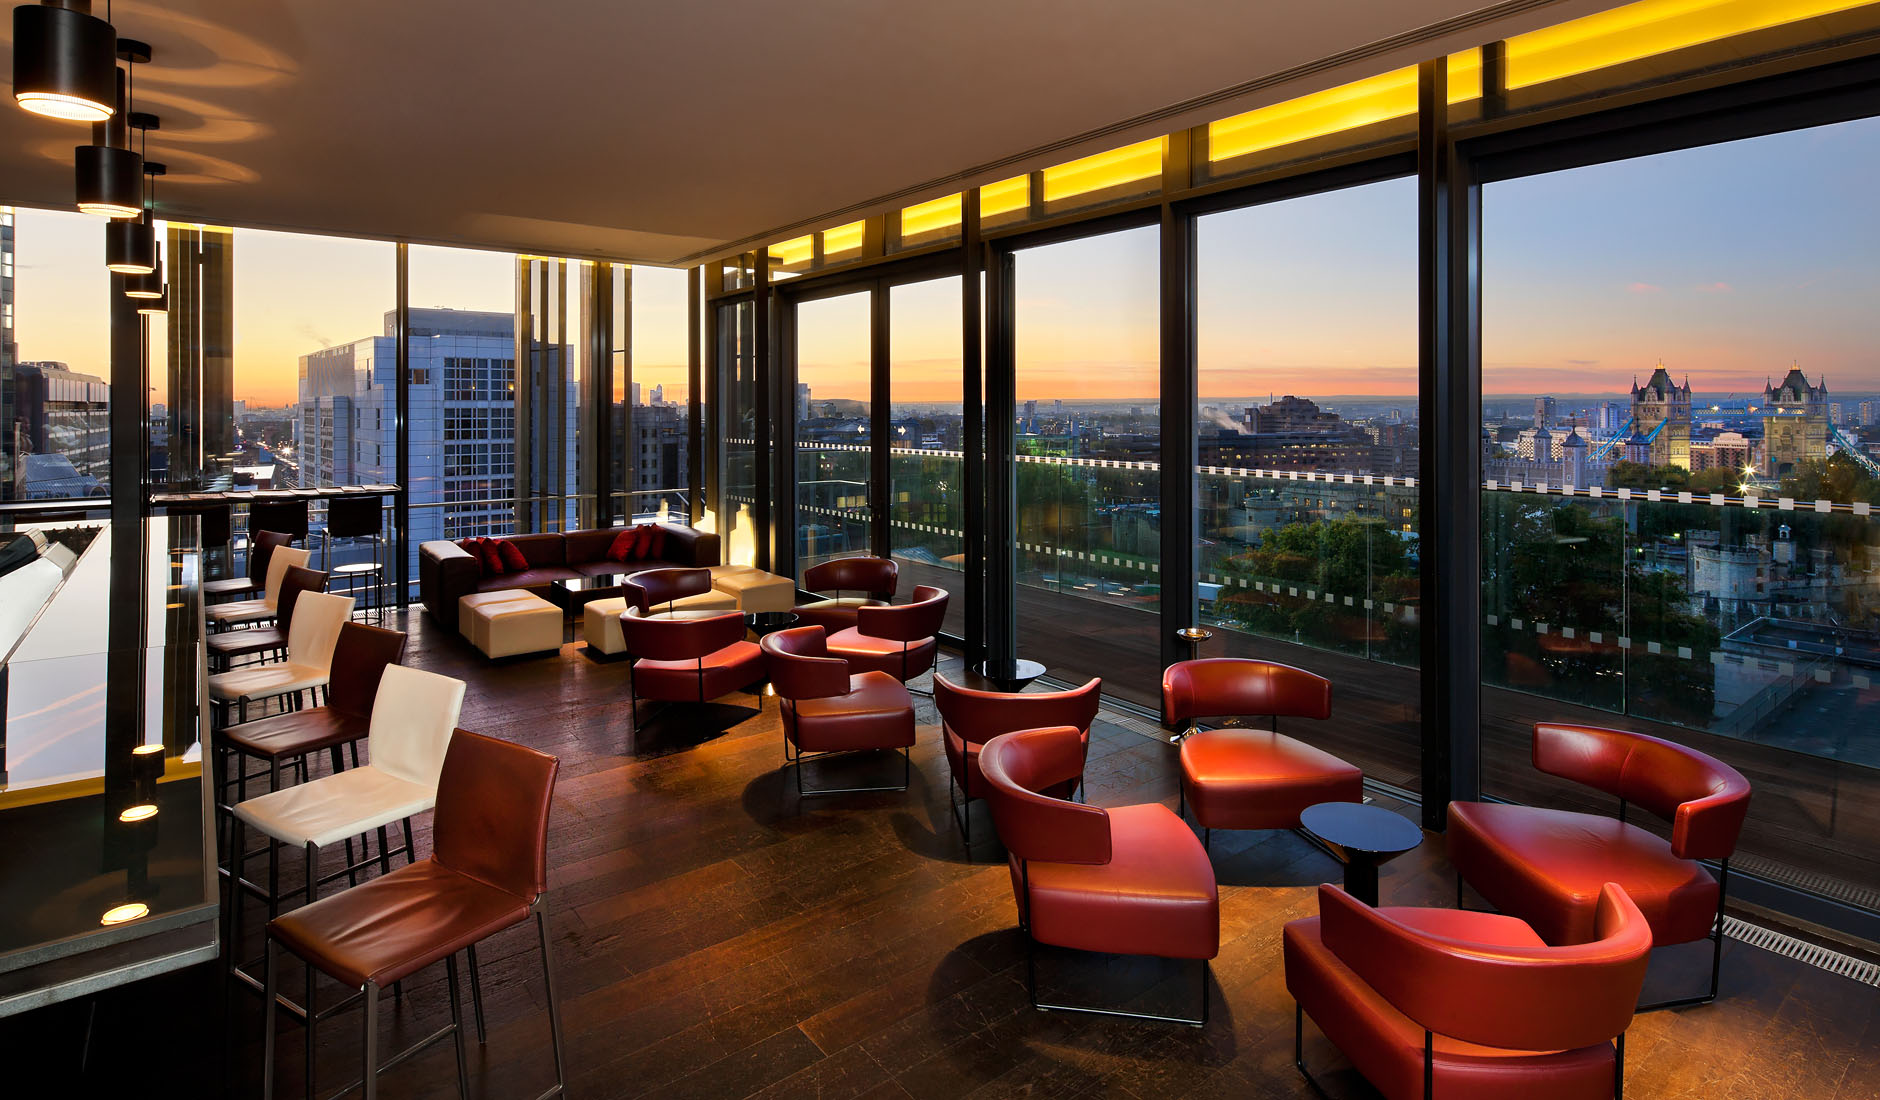 Top floor Cocktail Bar at newly constructed 5 star hotelClient: Woods Bagot